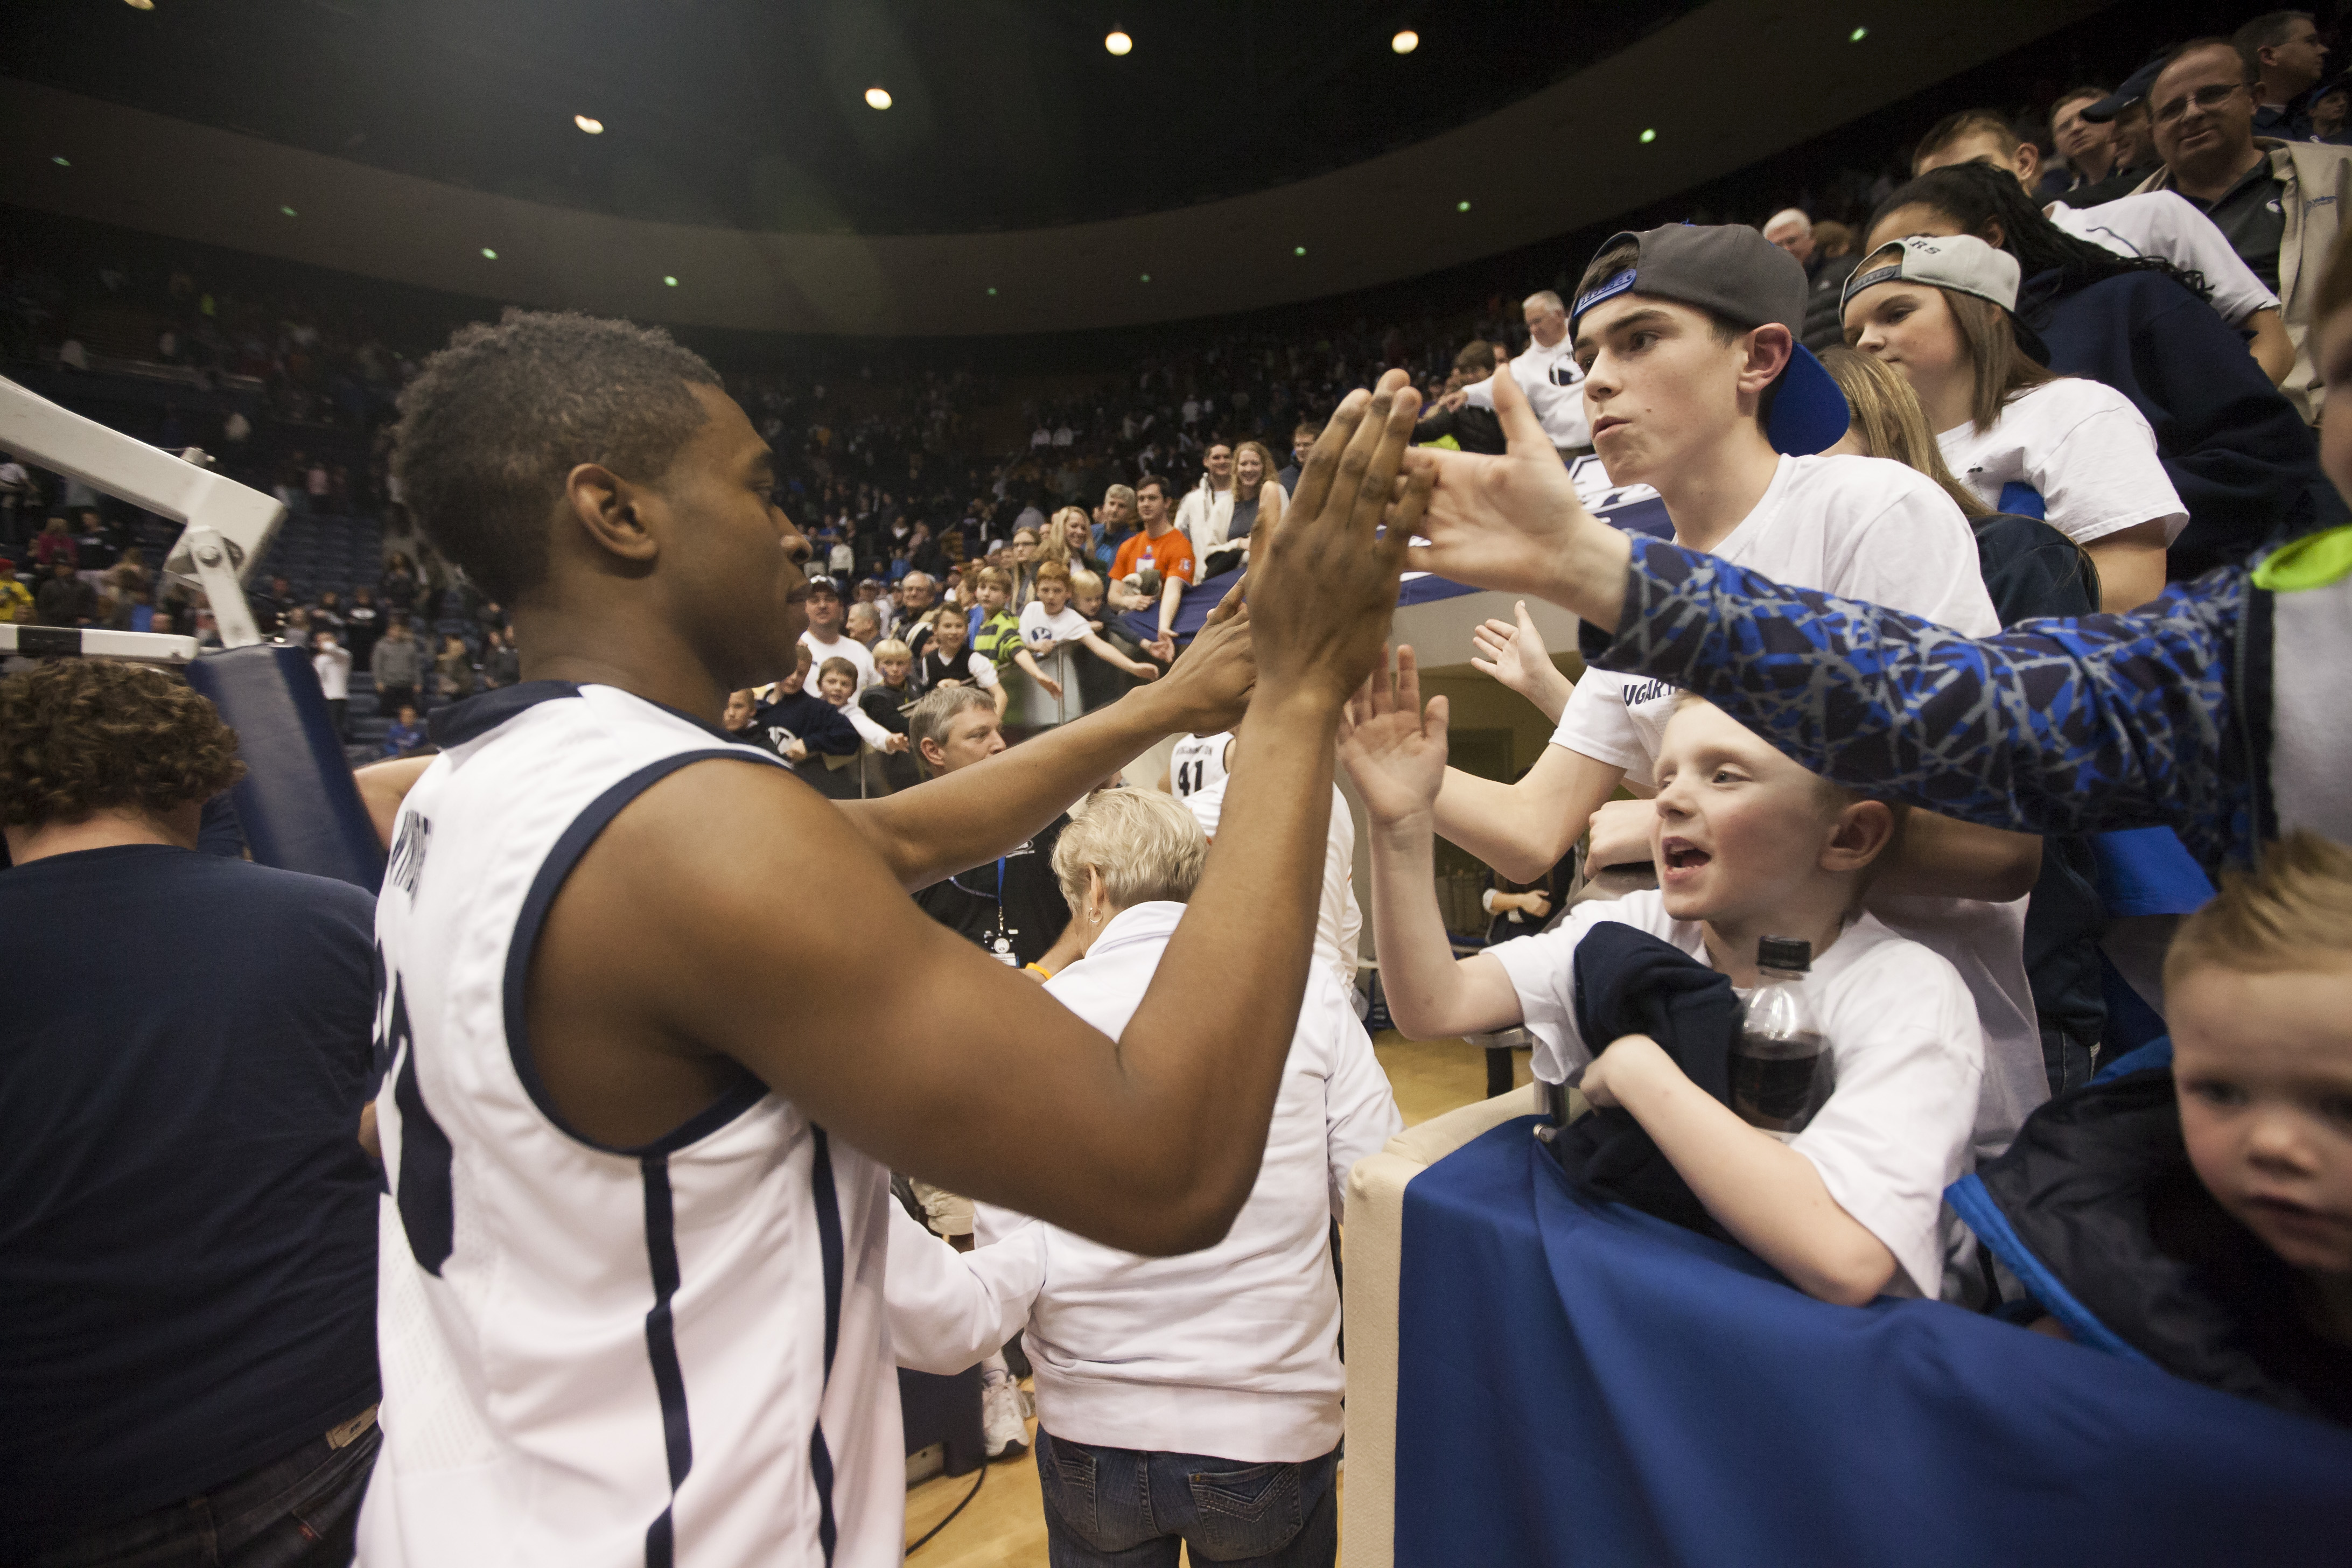 Anson Winder gives high-fives to fans after a game against the Saint Mary's Gaels. Photo by Elliott Miller